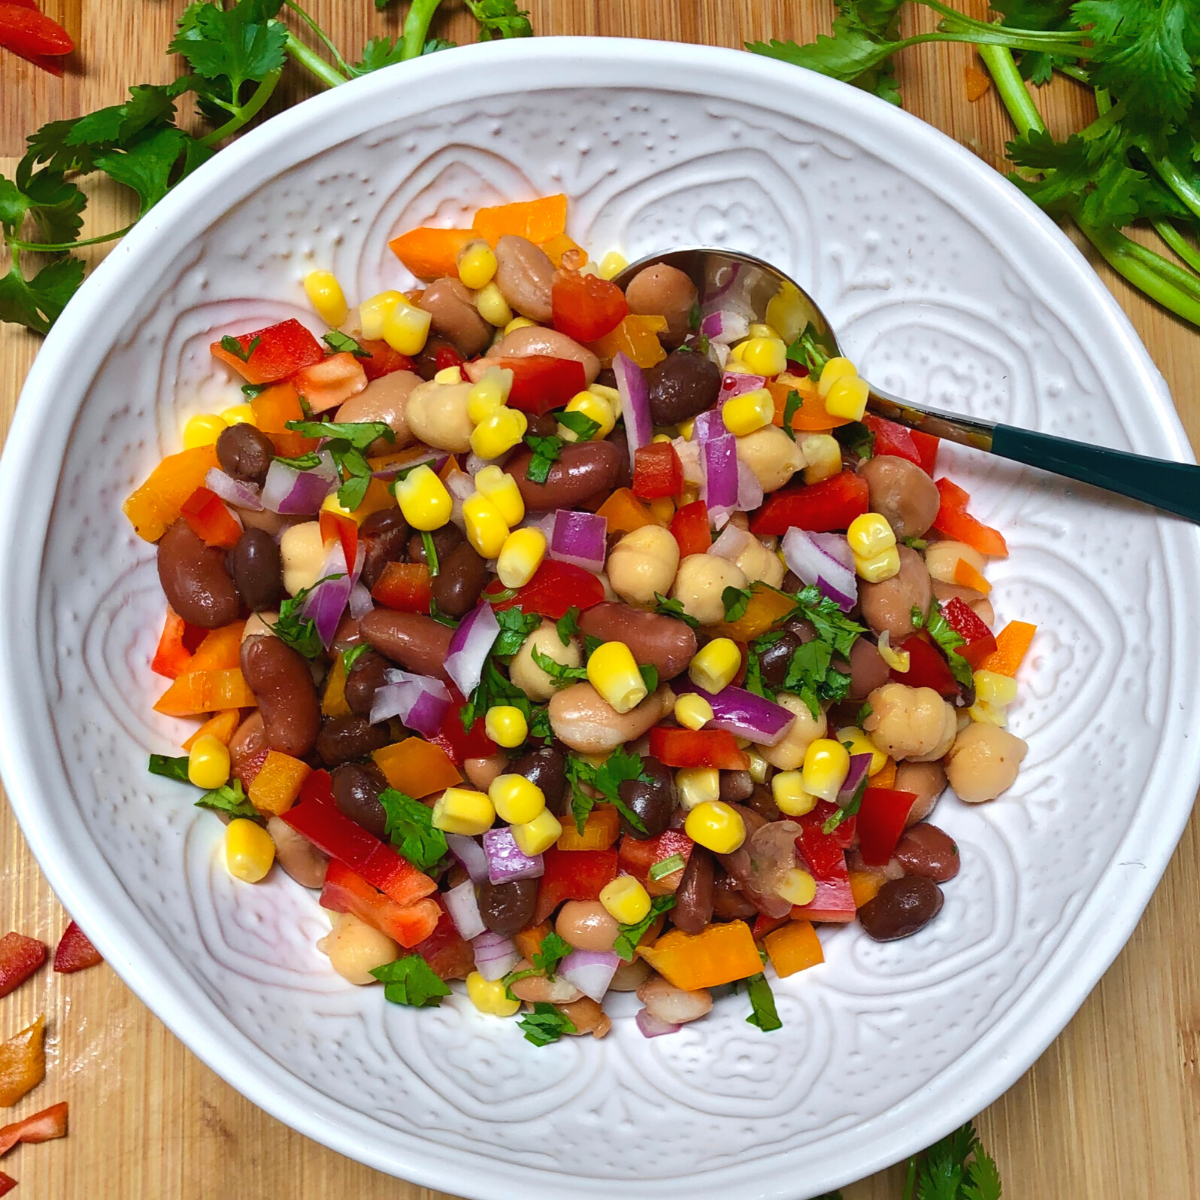 Vegan bean salad with peppers, corn and cilantro in a bowl.